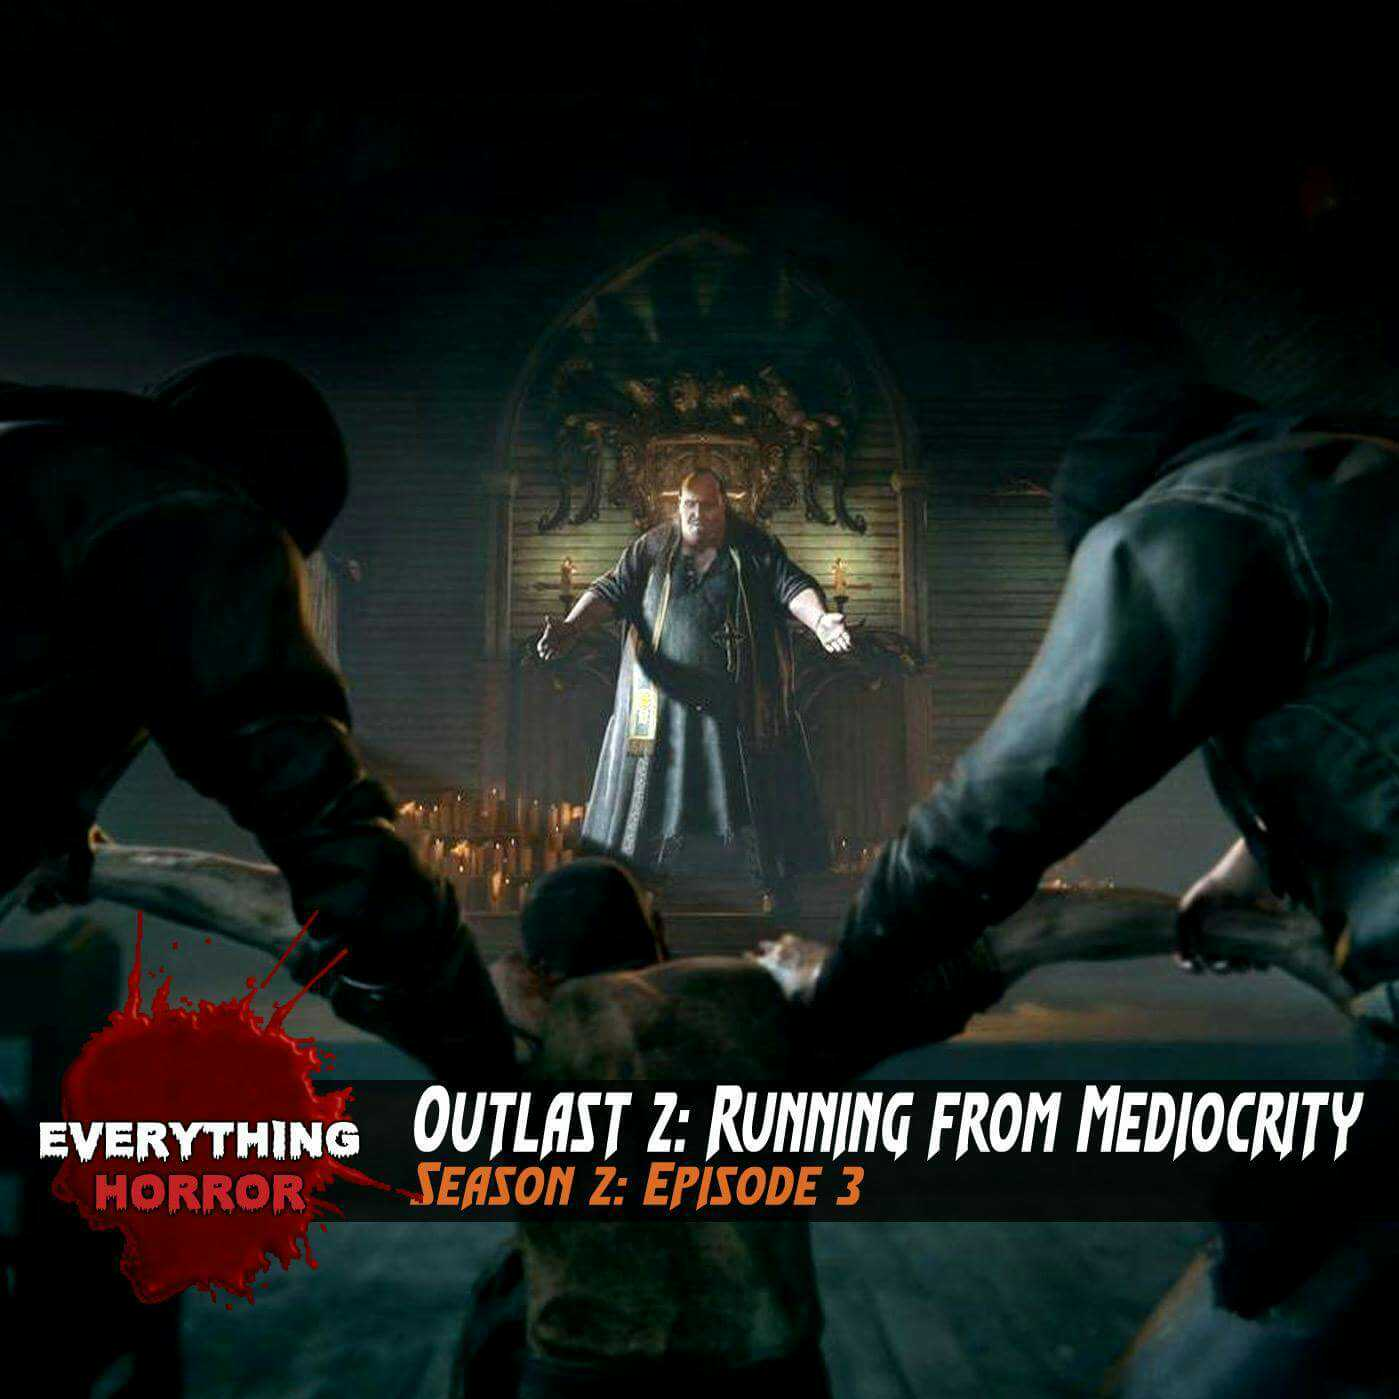 S2: Ep 3. Outlast 2: Running from Mediocrity